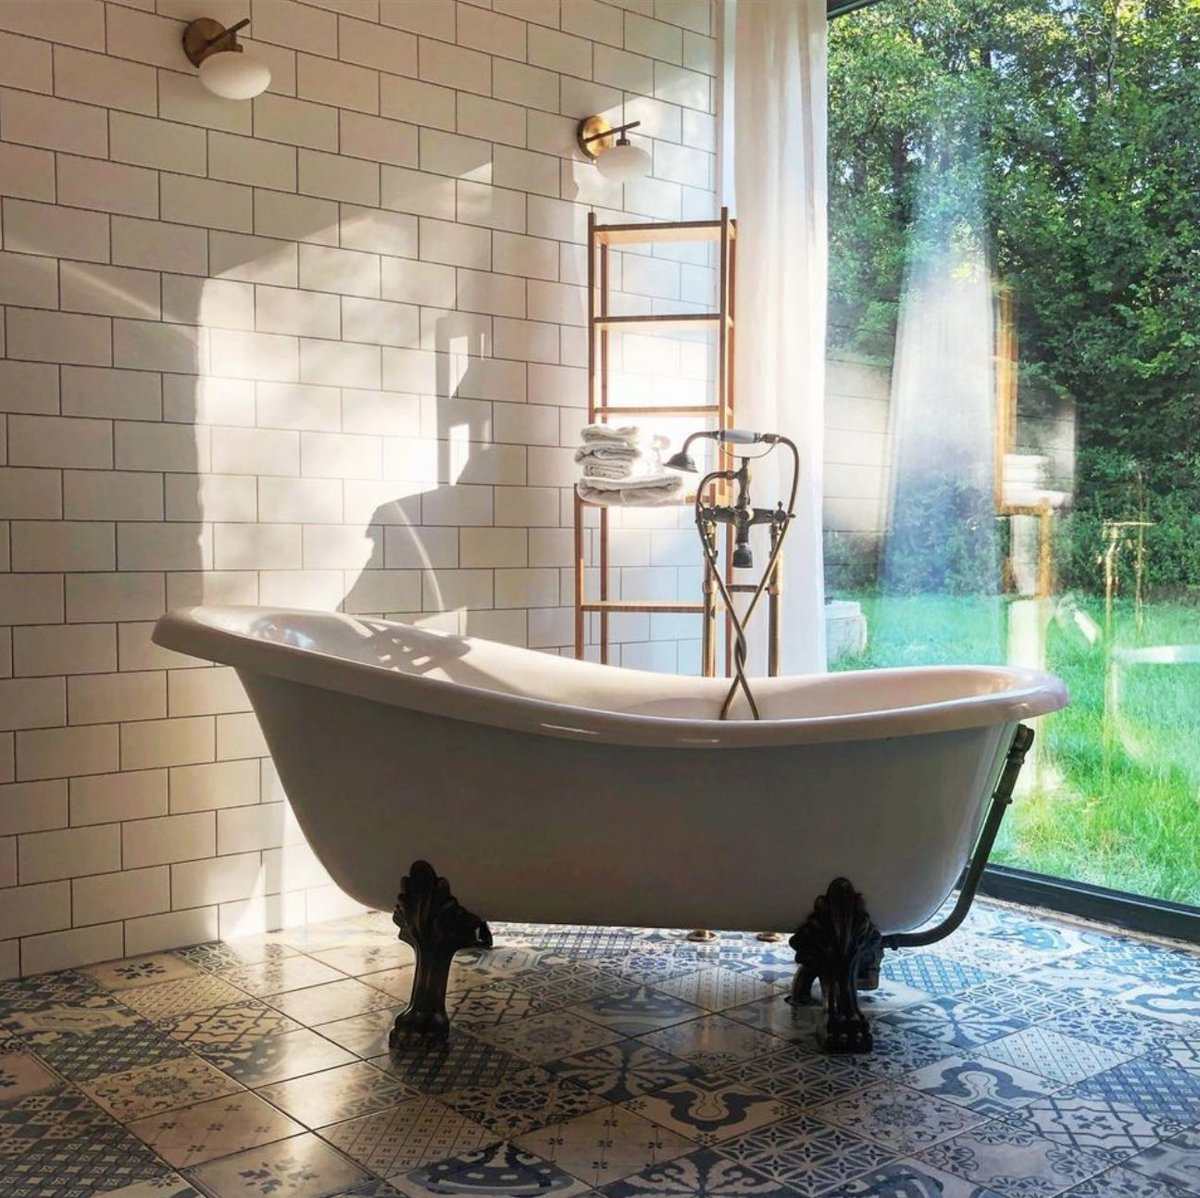 Summertime is coming! Wake up in this sunny #bathroom to begin a new season. Follow the link for more inspiration hubs.ly/H0JRKgw0